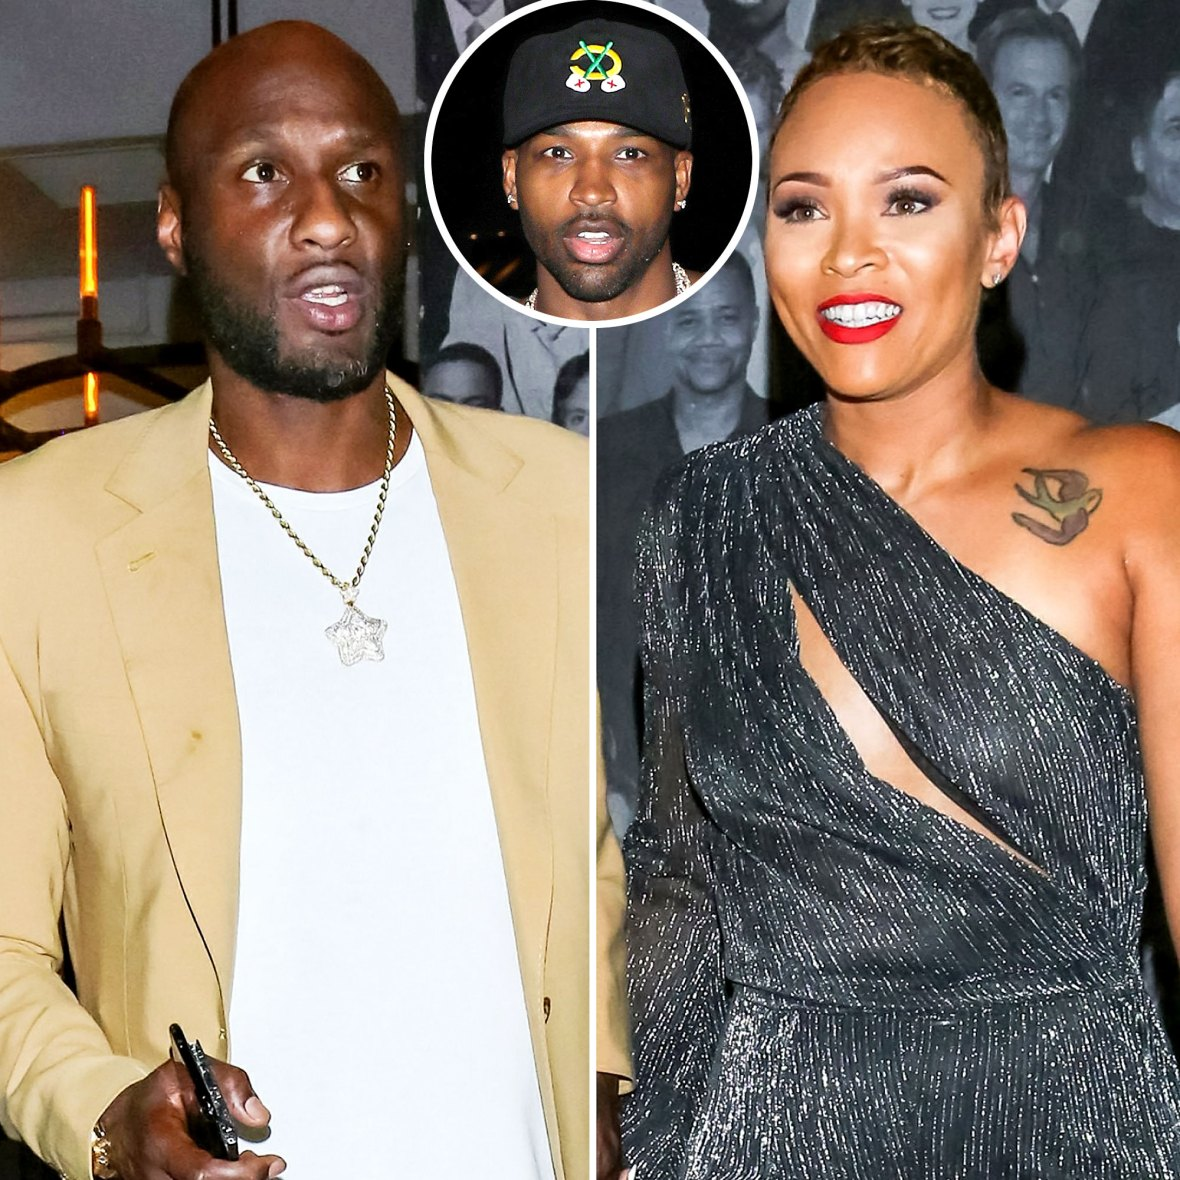 Lamar Odom Claims Ex Sabrina Parr Hooked Up With Tristan Thompson